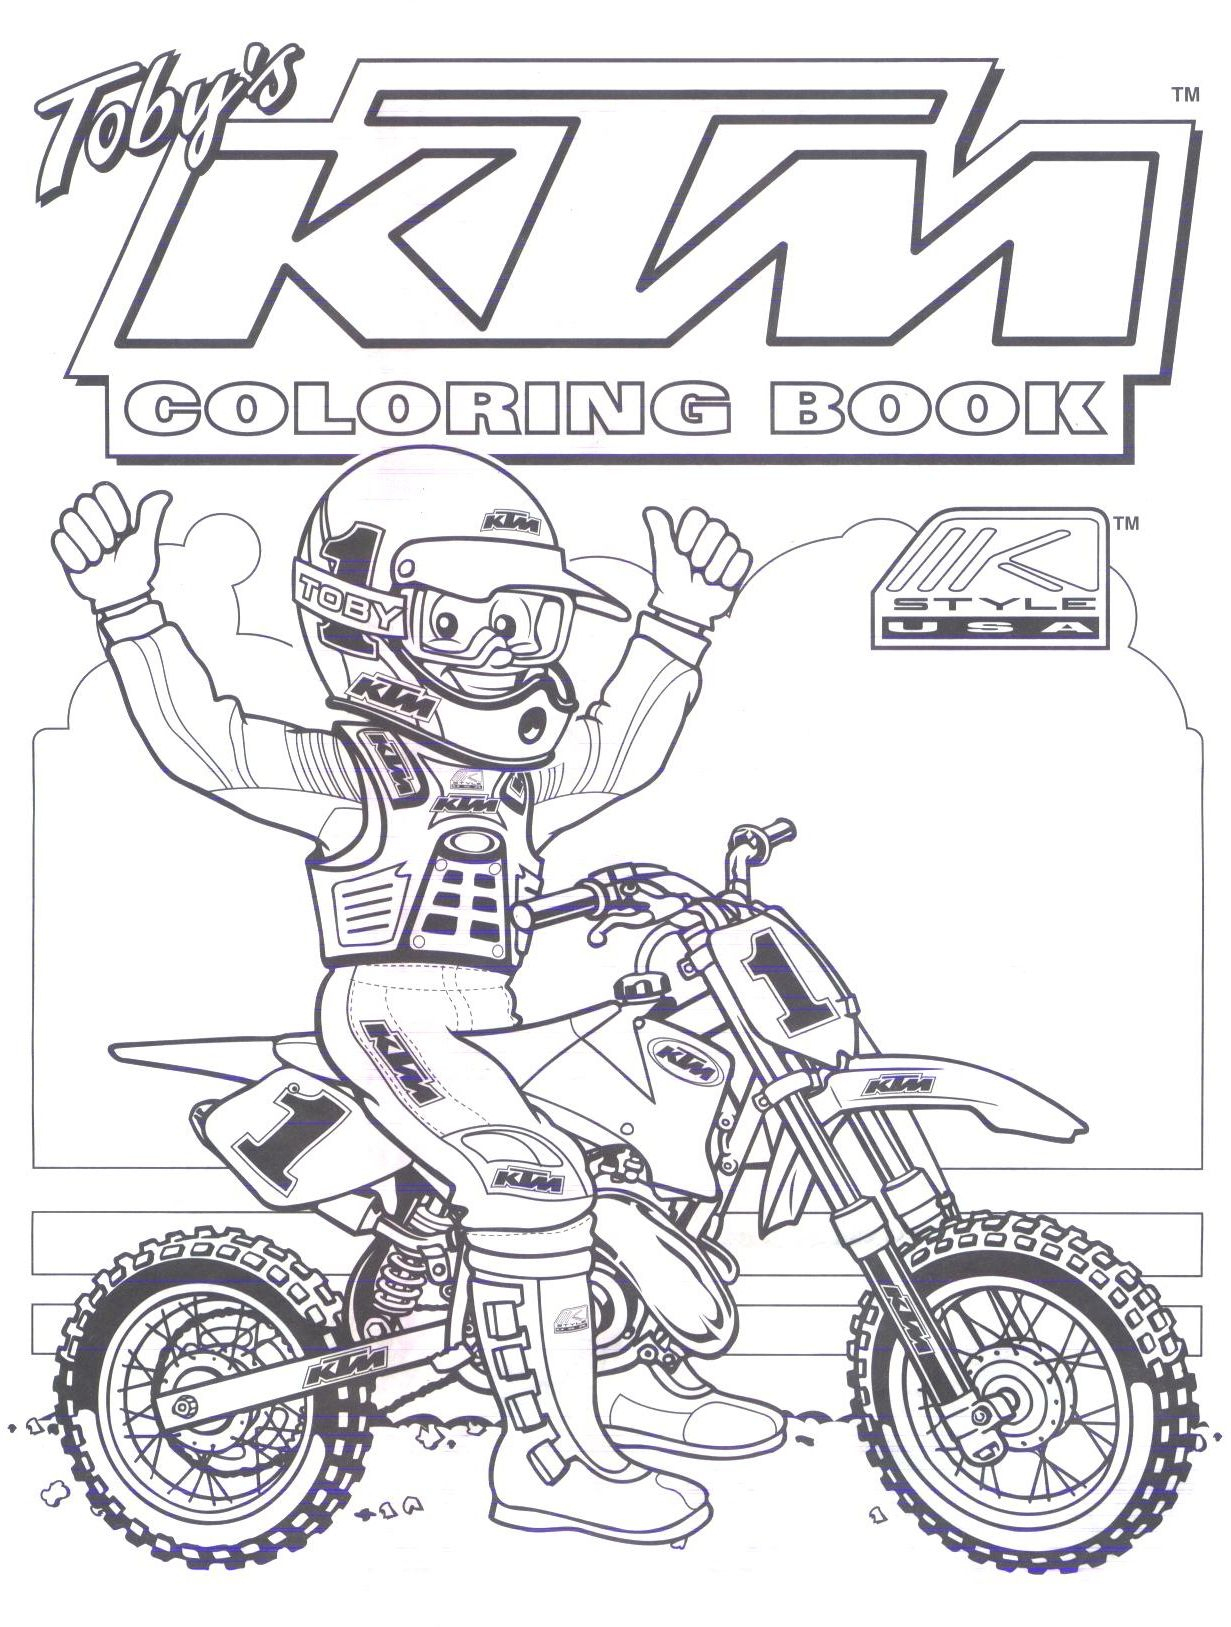 Motocross Ktm Colouring Pages | Dirt Bike Birthday, Ktm tout Moto Cross À Colorier